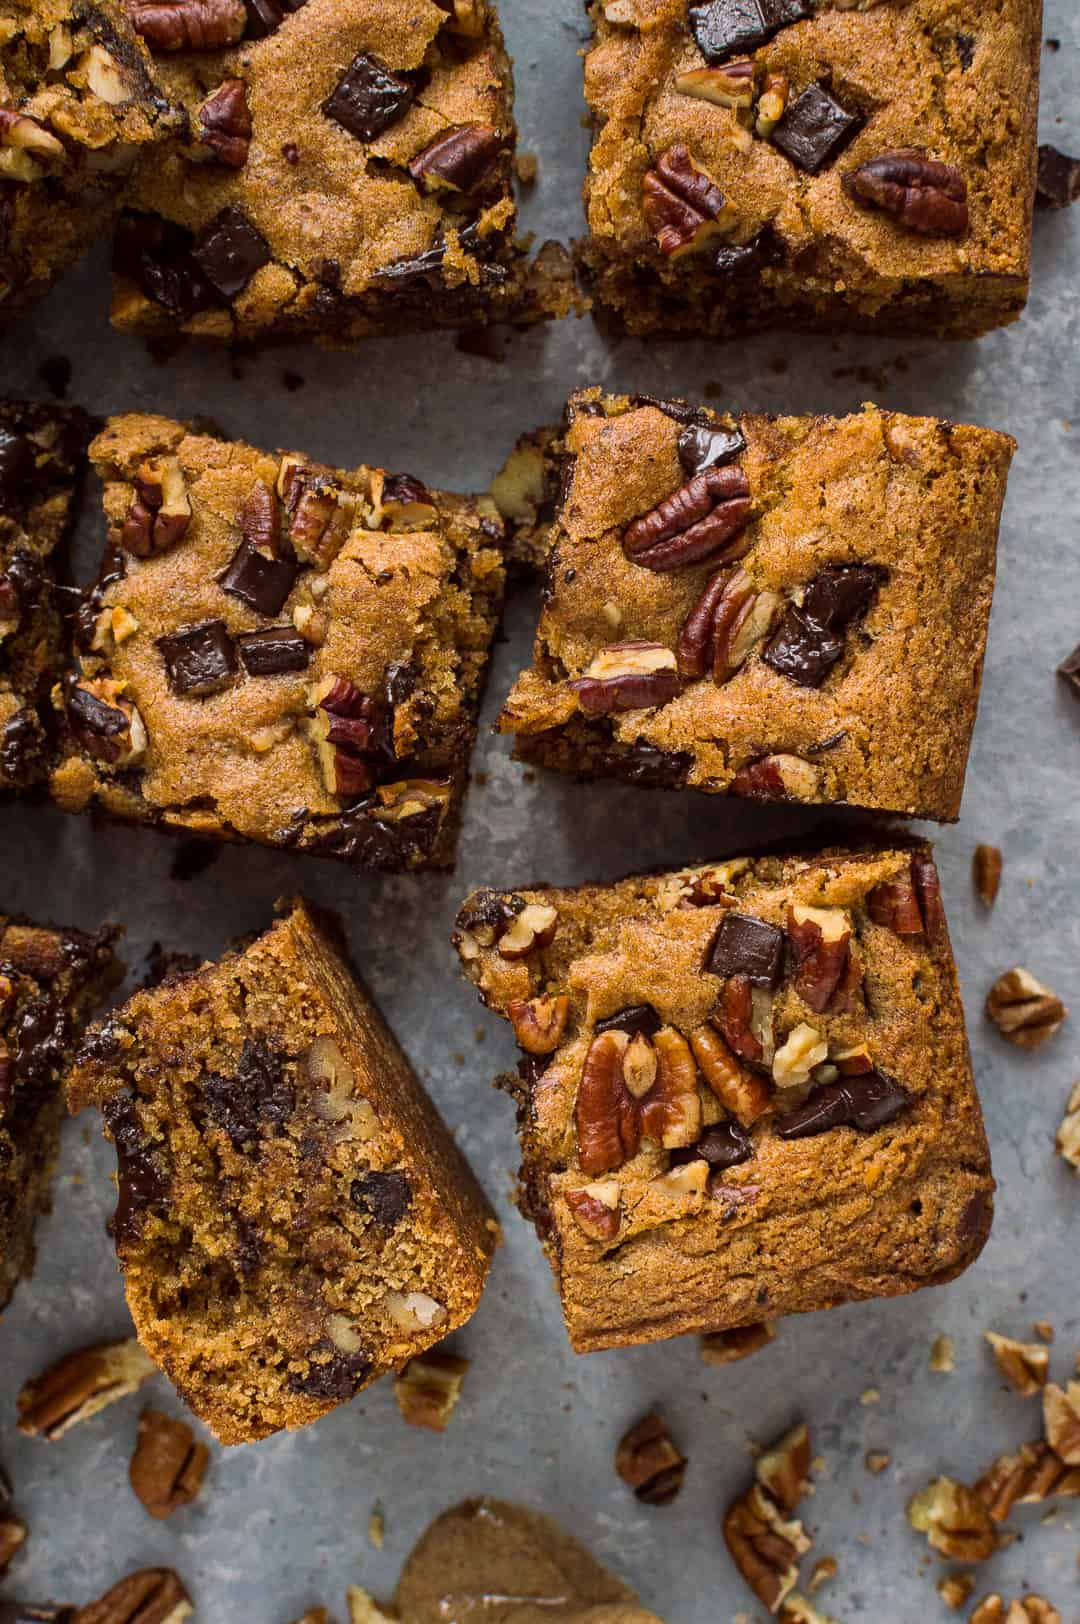 Squares of egg and dairy free peanut butter chocolate chip pecan bars.